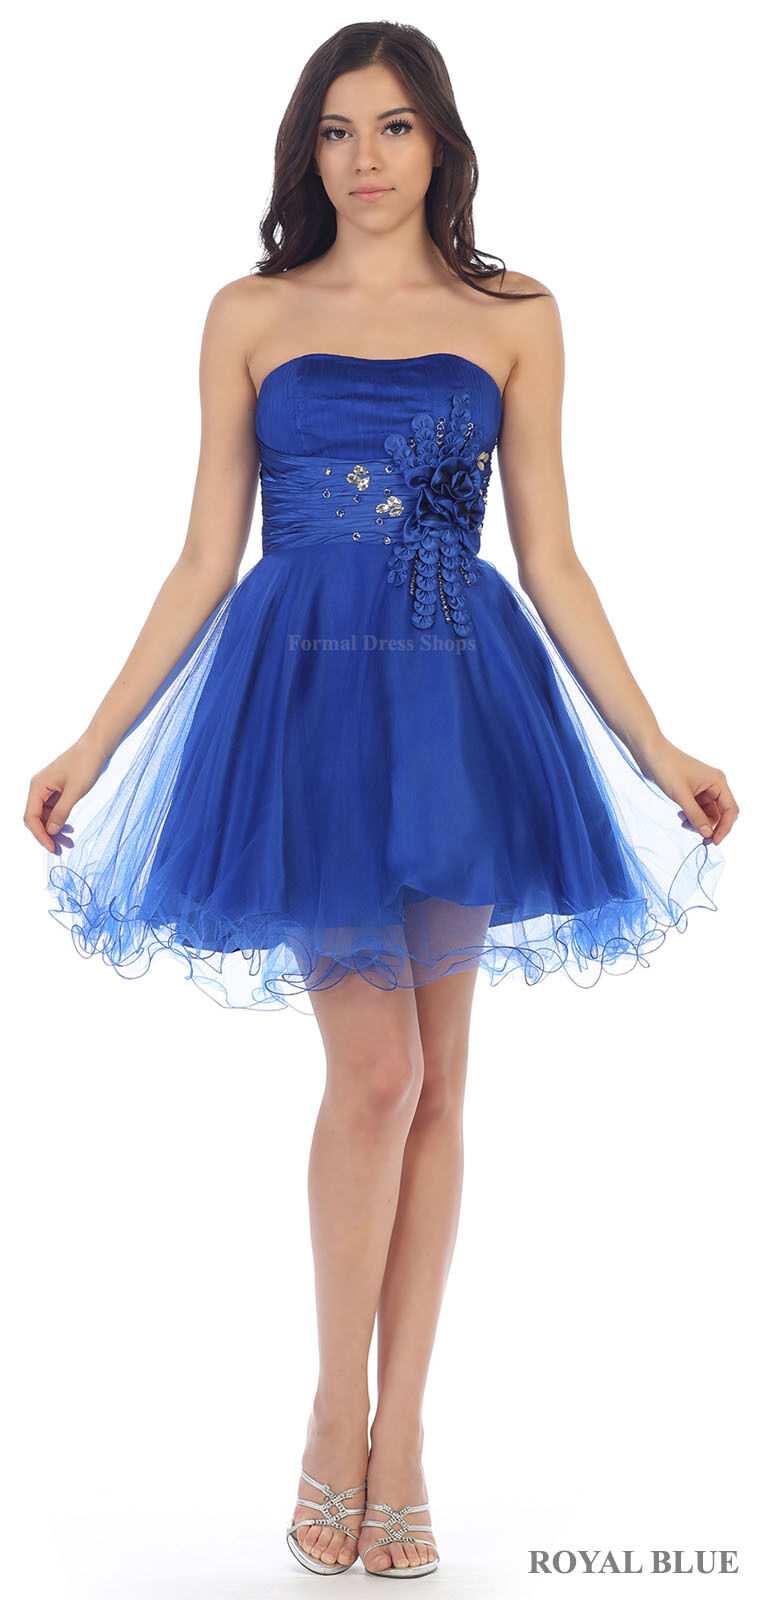 ! SALE ! SHORT PROM DRESS UNDER $100 HOMECOMING WINTER ...